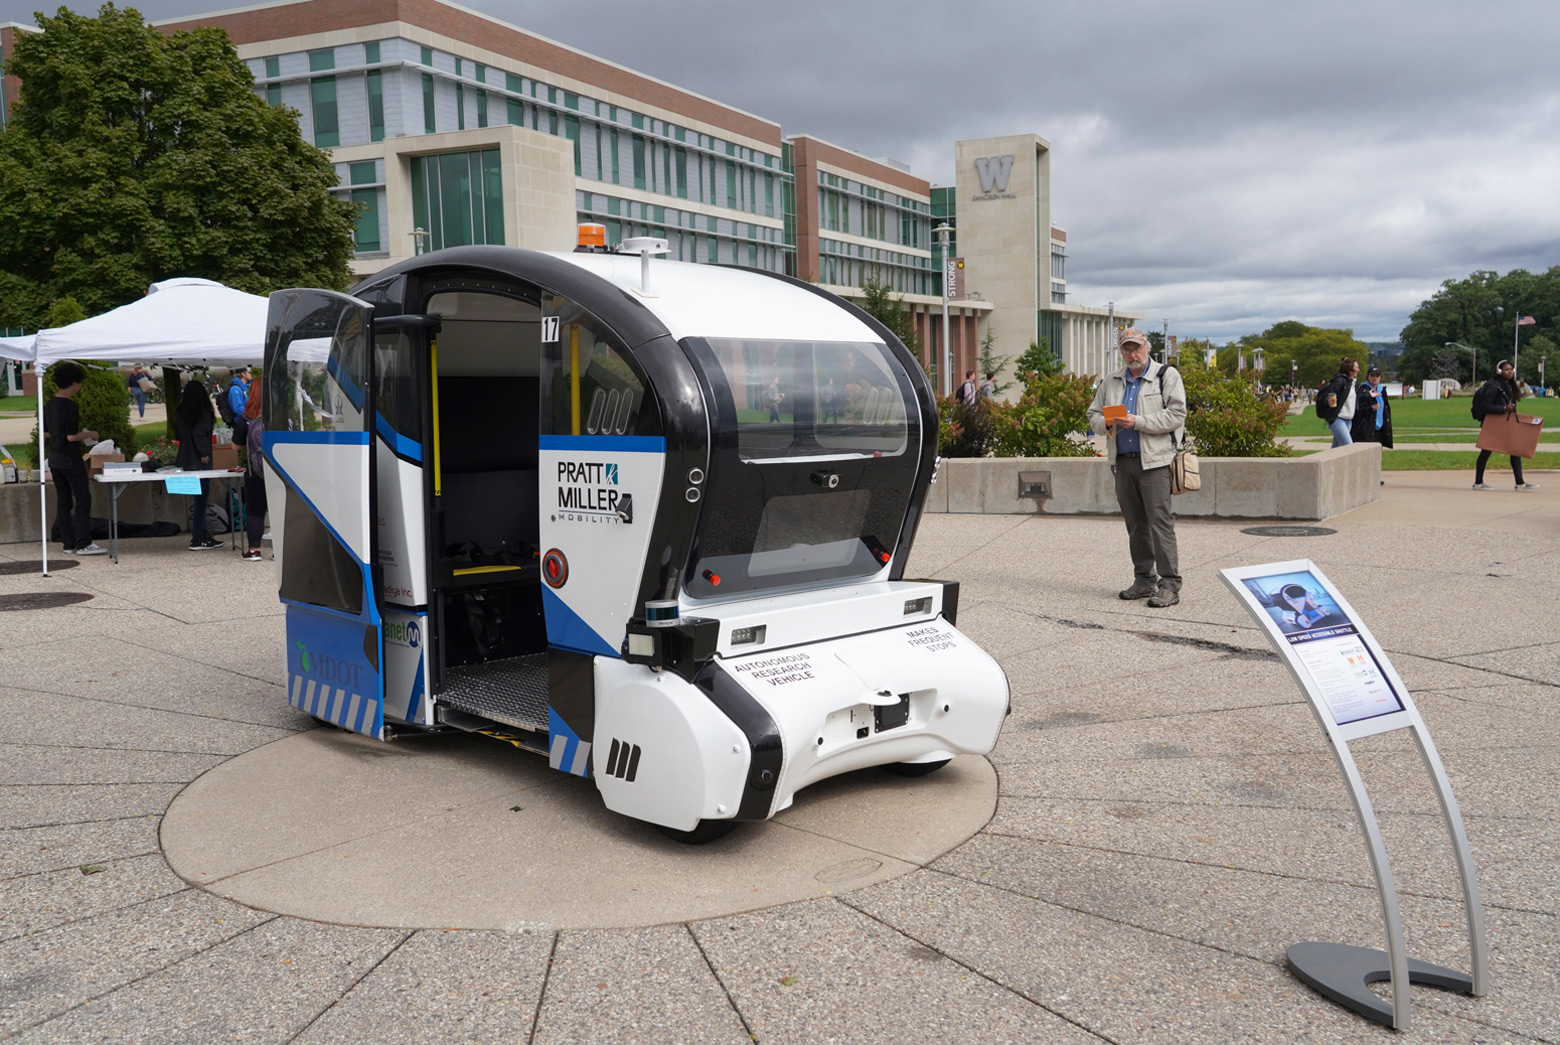 The autonomous vehicle parked on Western Michigan University's campus